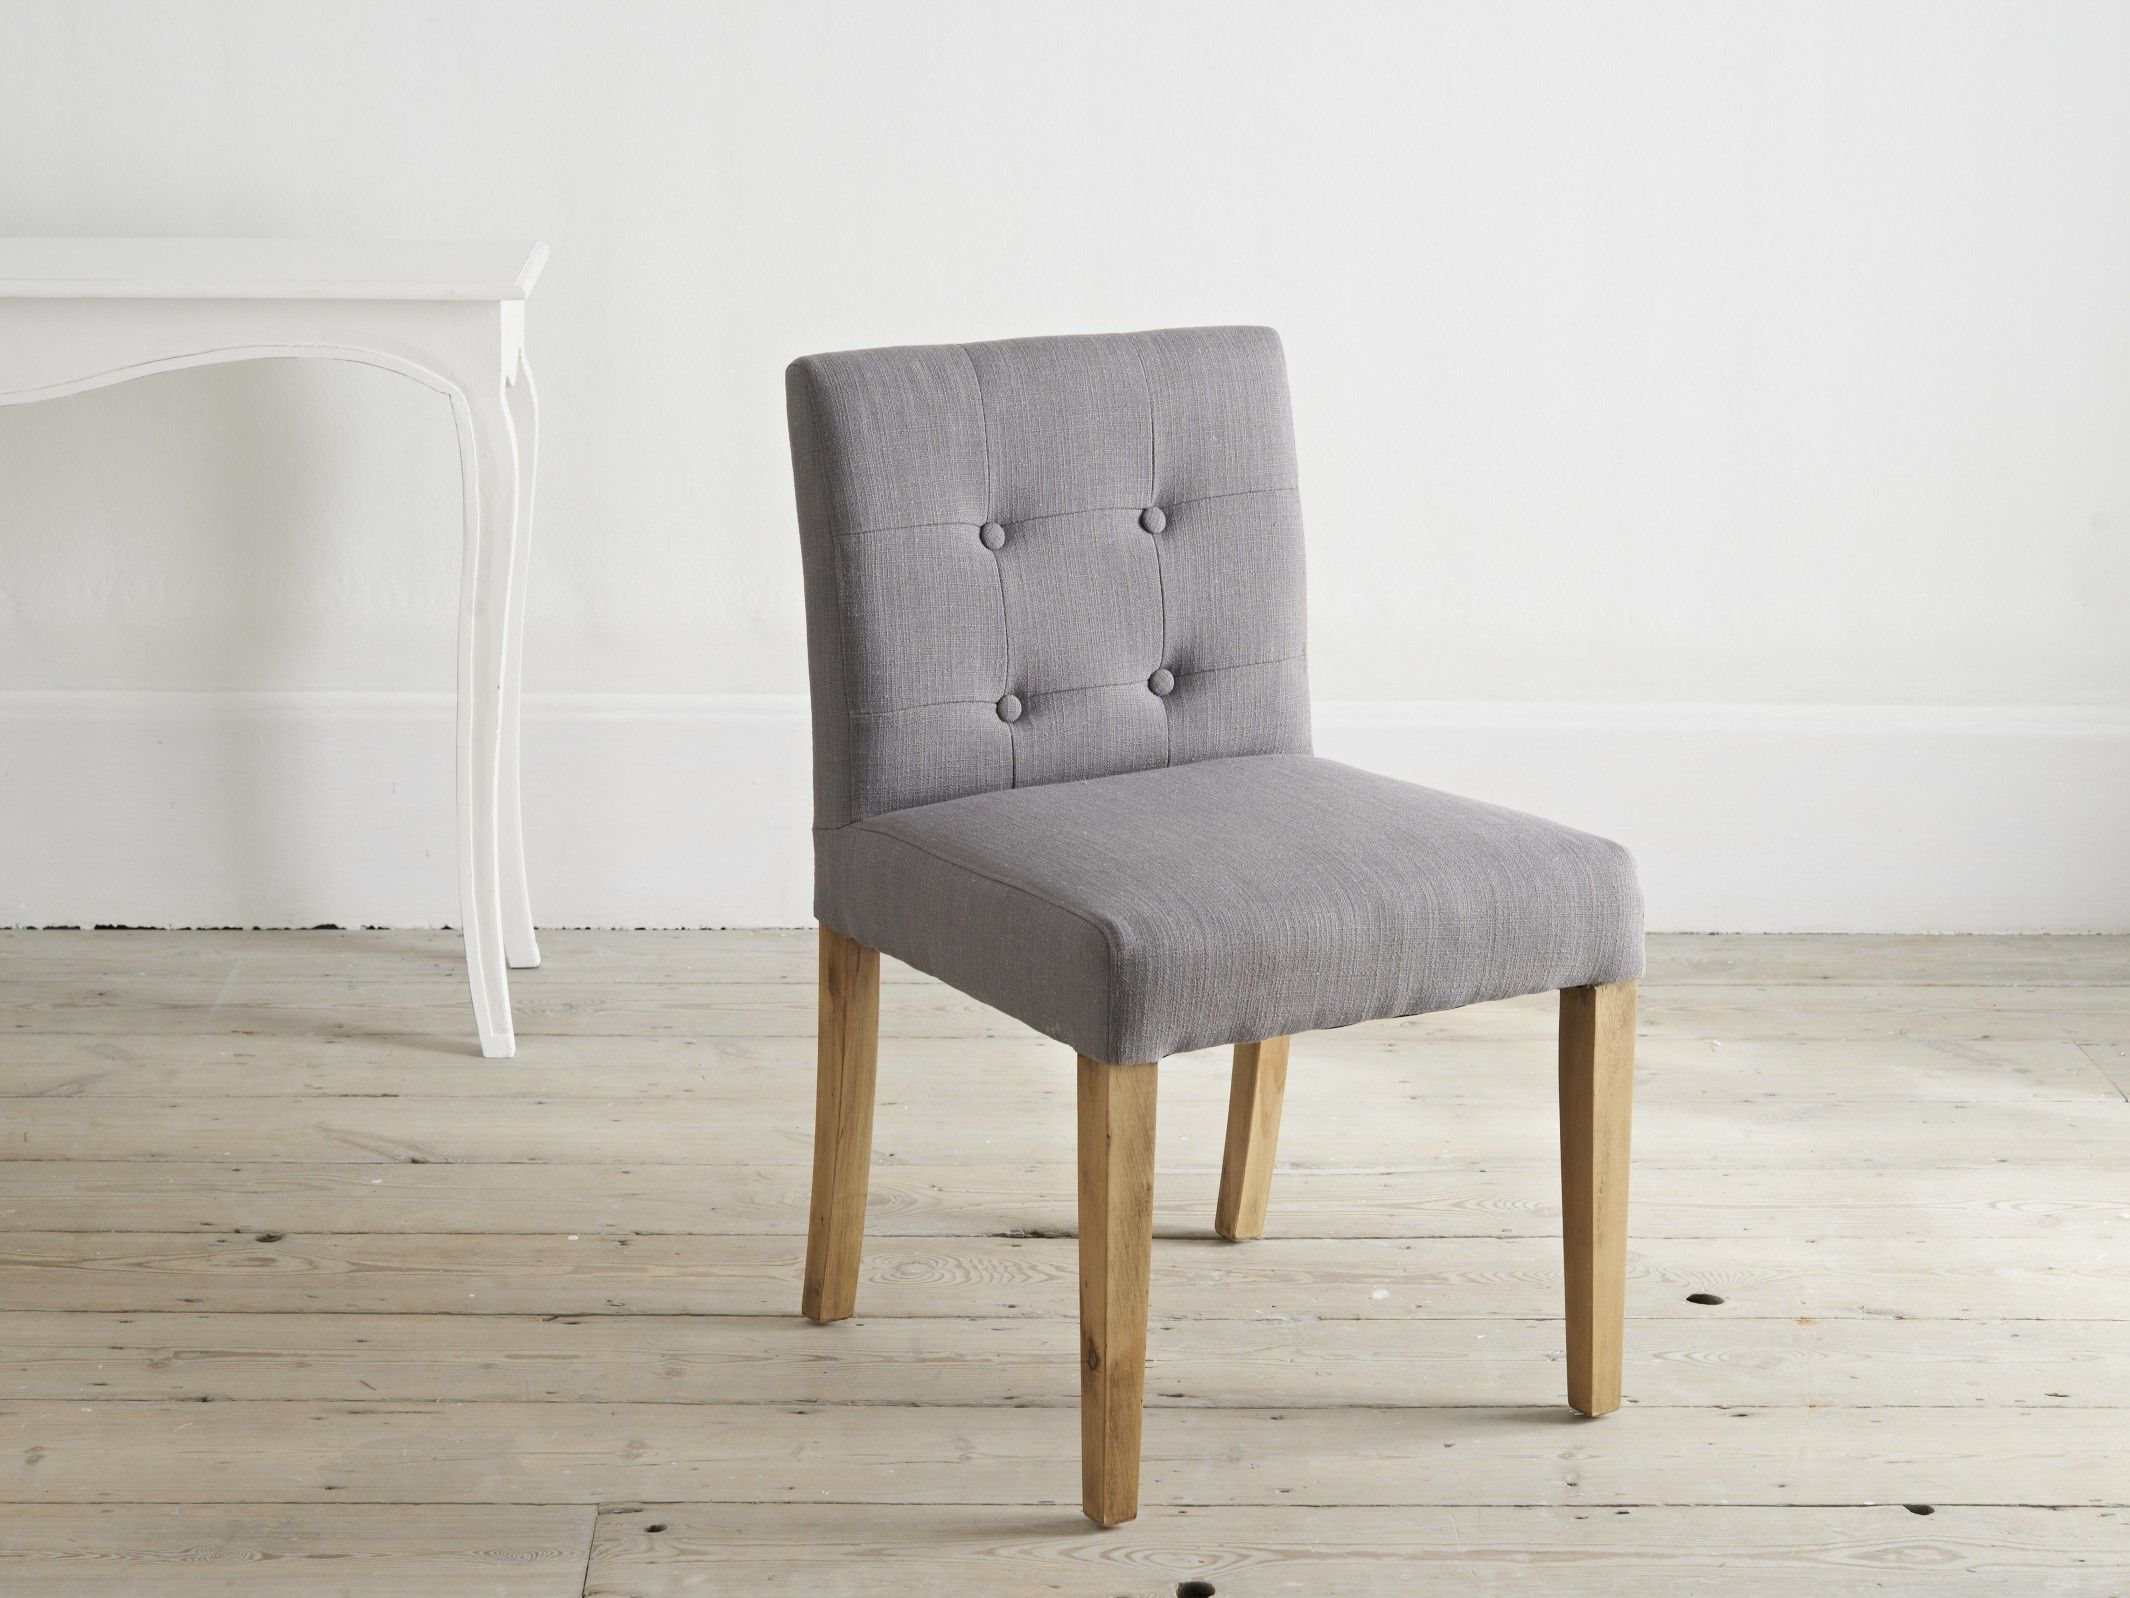 A Stunning Low Back Dining Chair With Birch Legs And Textured Grey Linen Upholstery Chequerboard Stitch Detailing Four Perfectly Placed Buttons